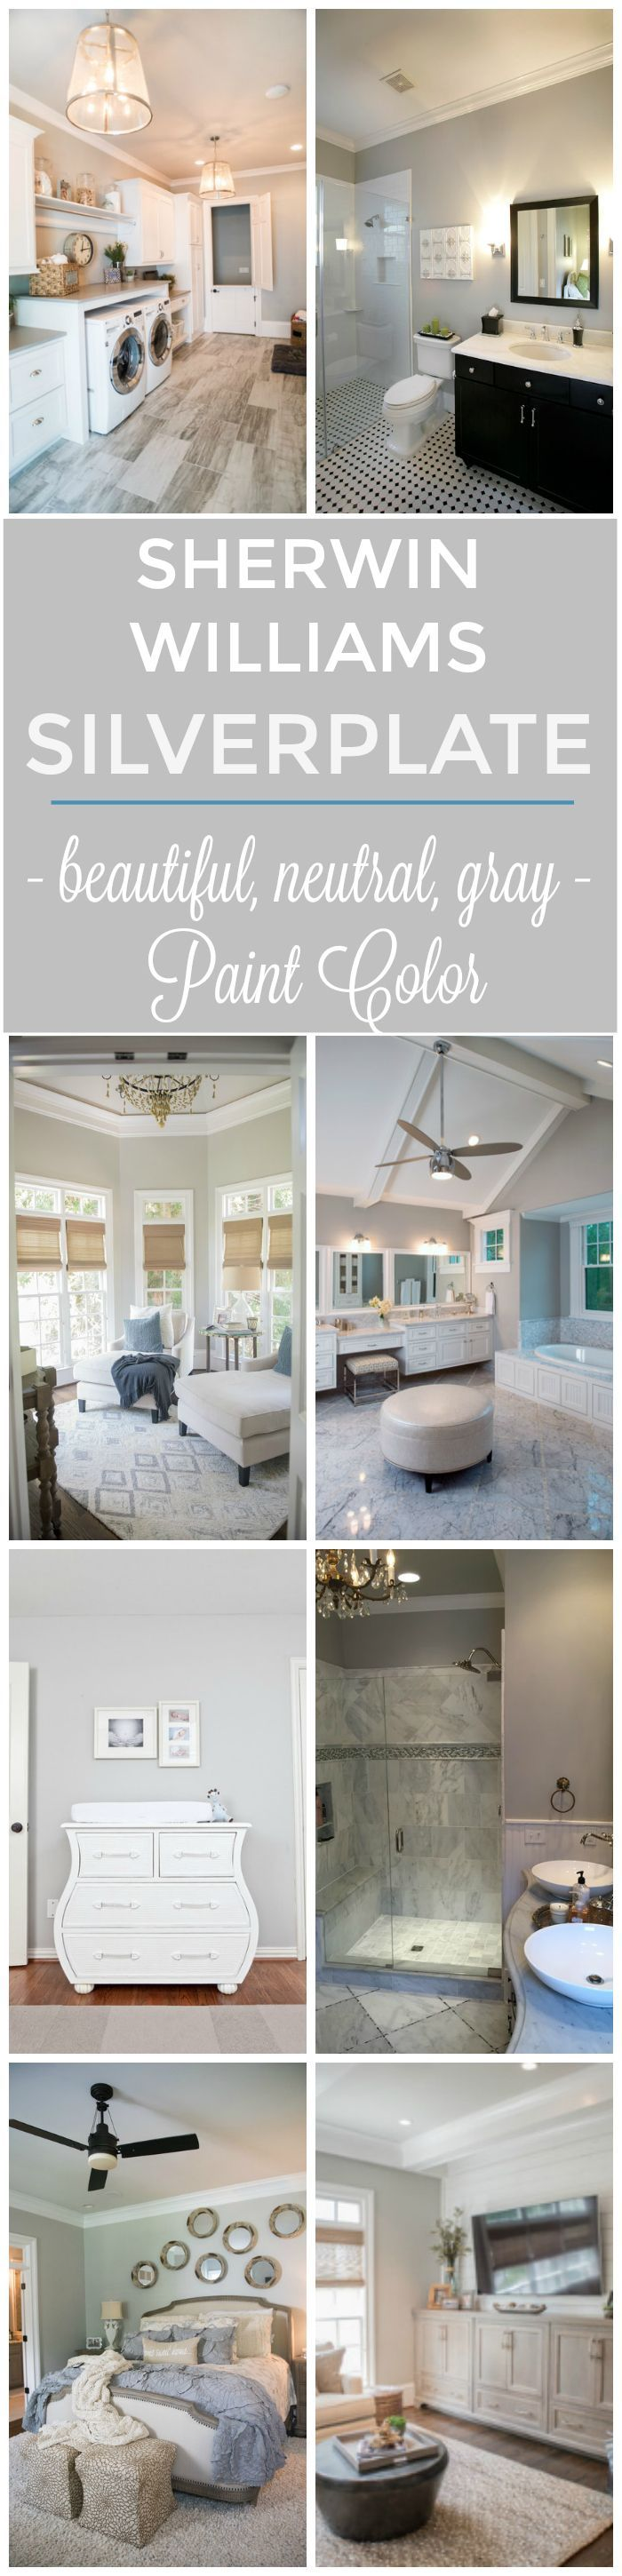 90 best Paint Colors in Real Life images on Pinterest